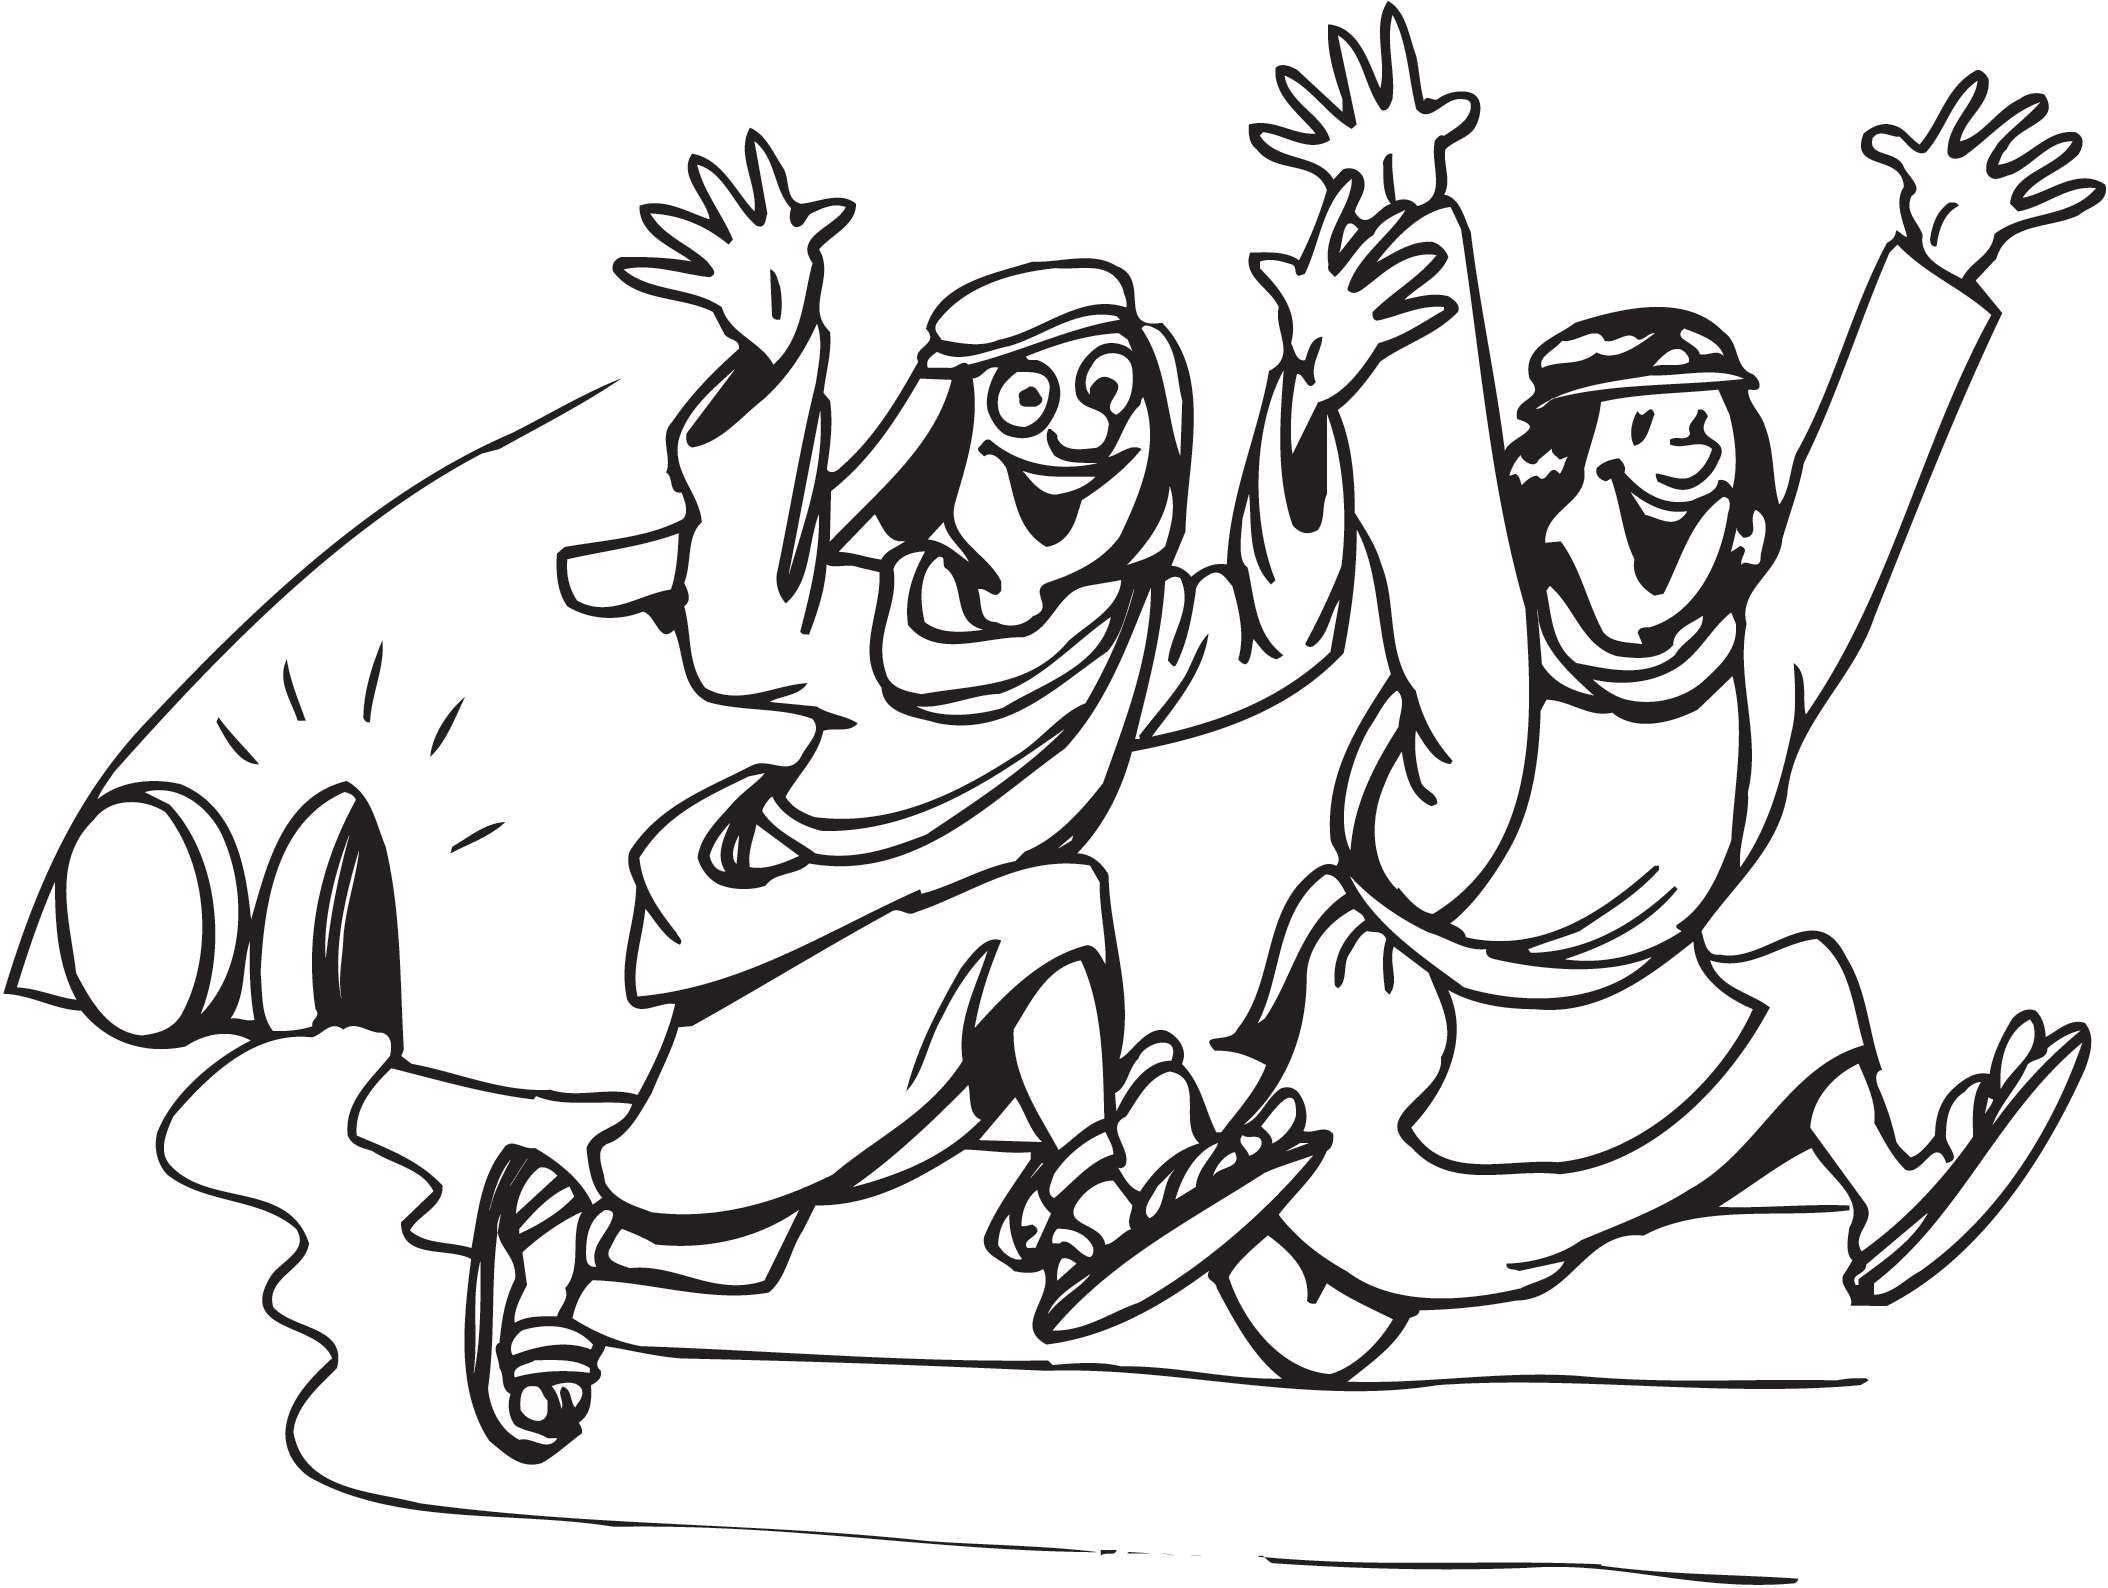 frees that you. Empty tomb clipart jesus is alive